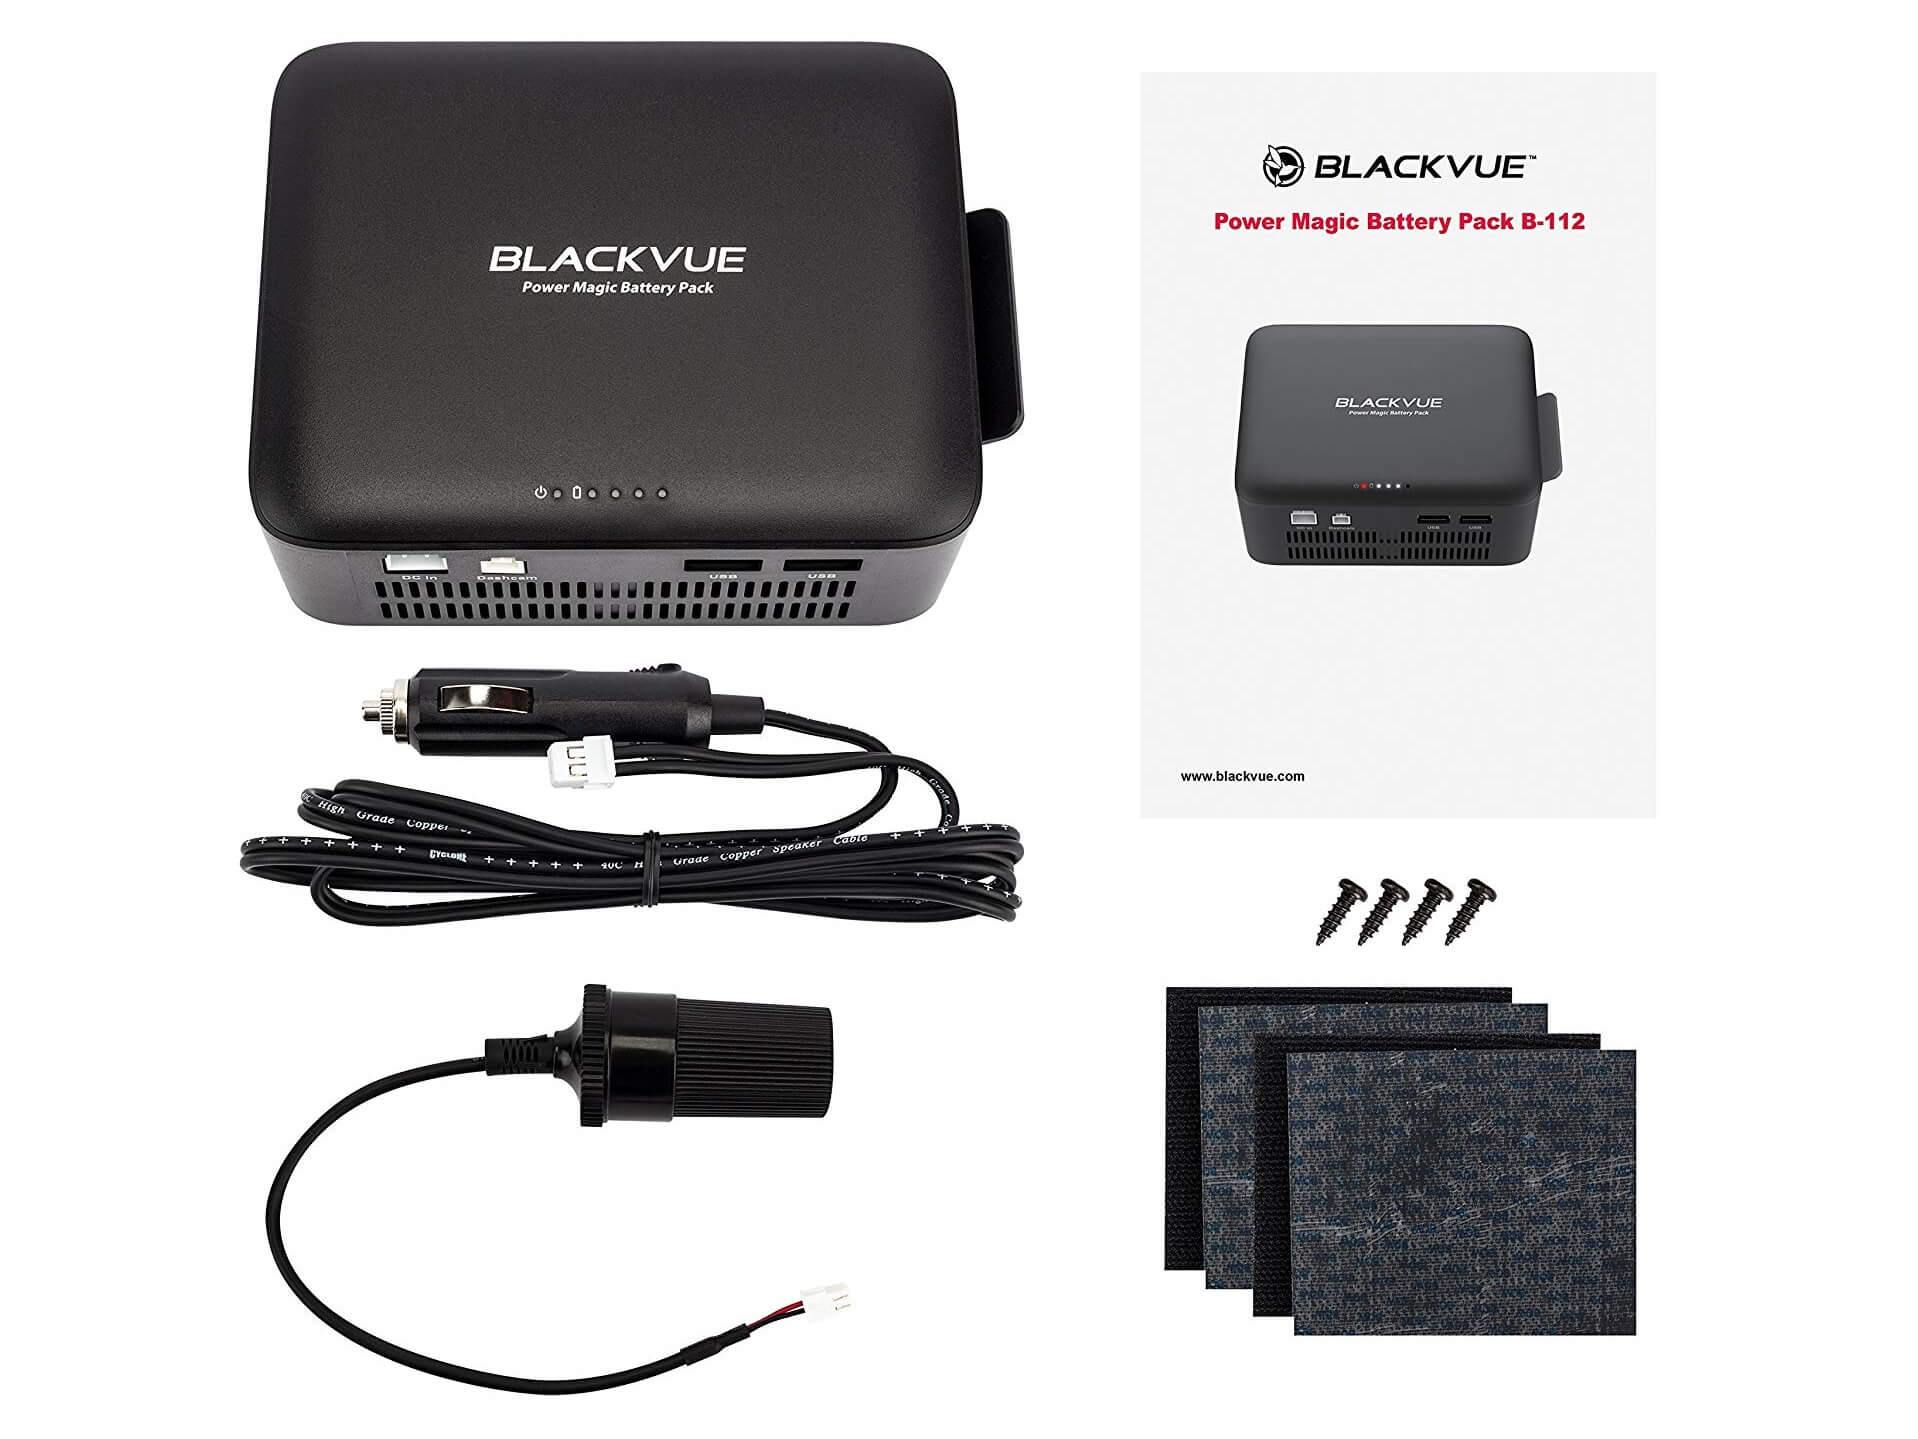 Blackvue B-112 Power Magic Battery Pack - 6